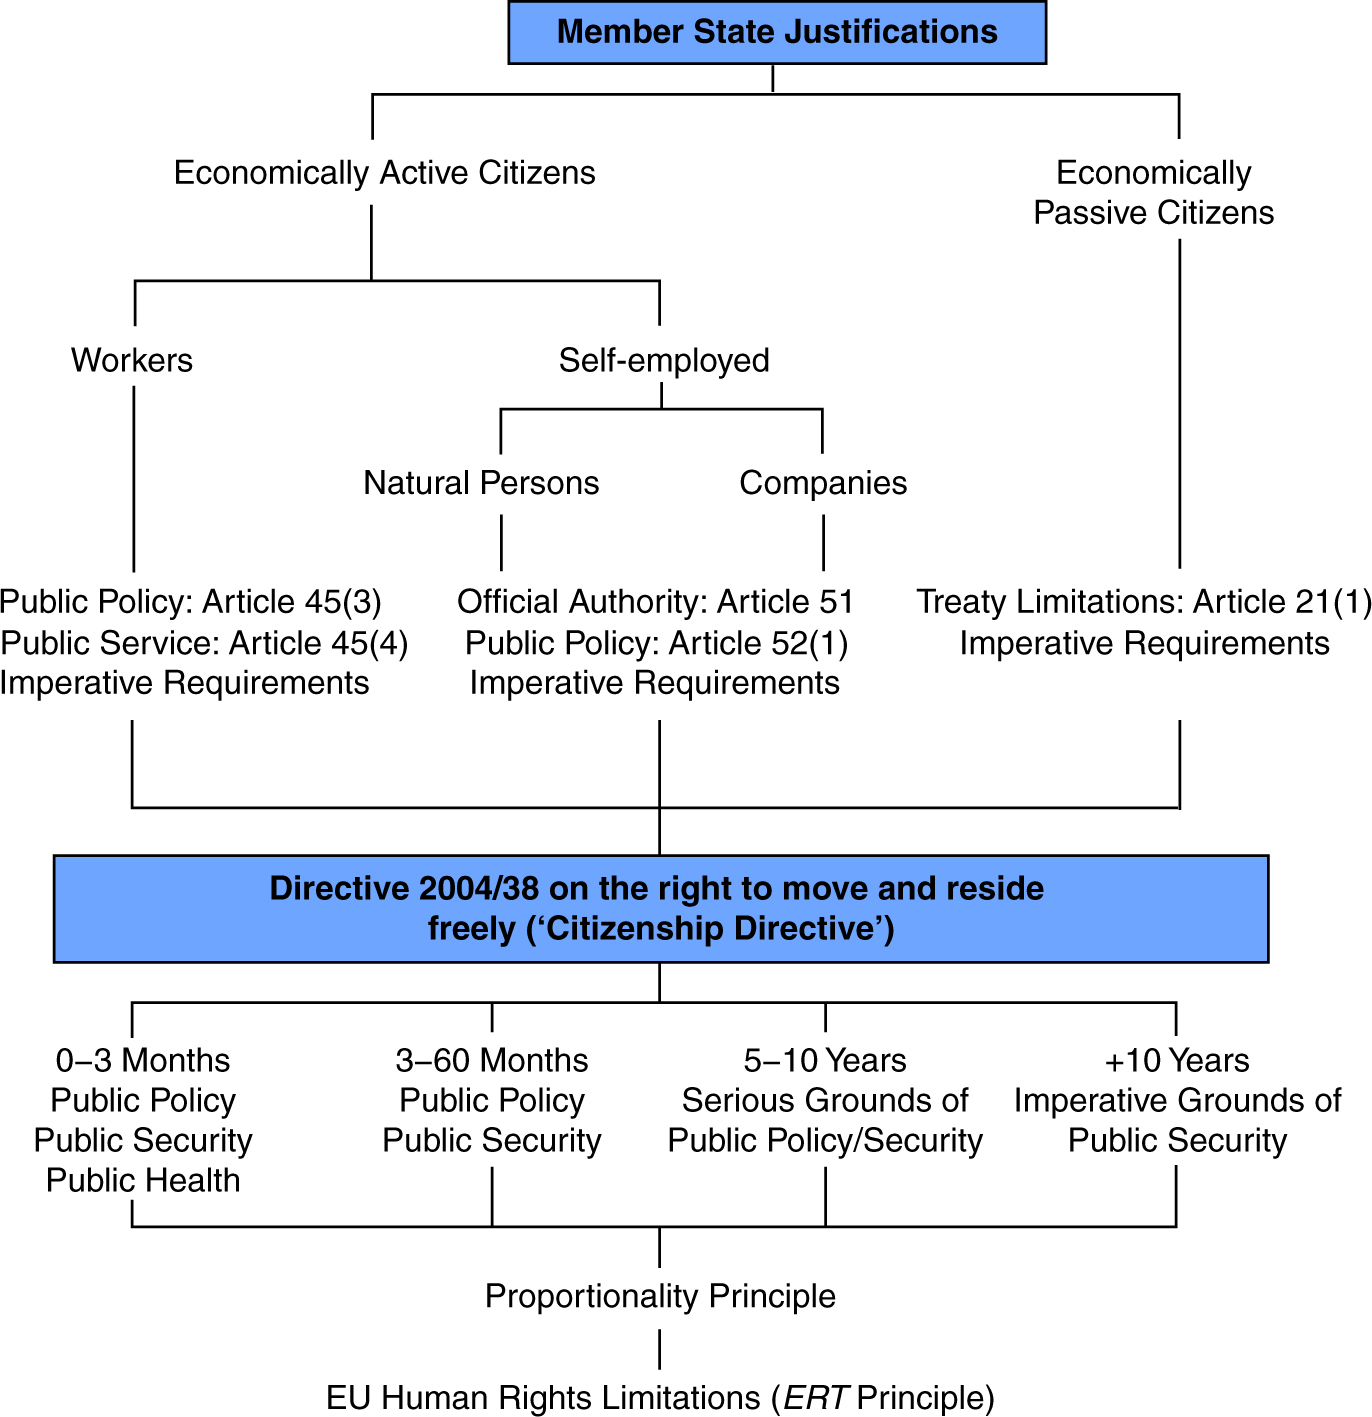 Figures robert schtze european union law figure 153 justifications summary flowchart nvjuhfo Choice Image